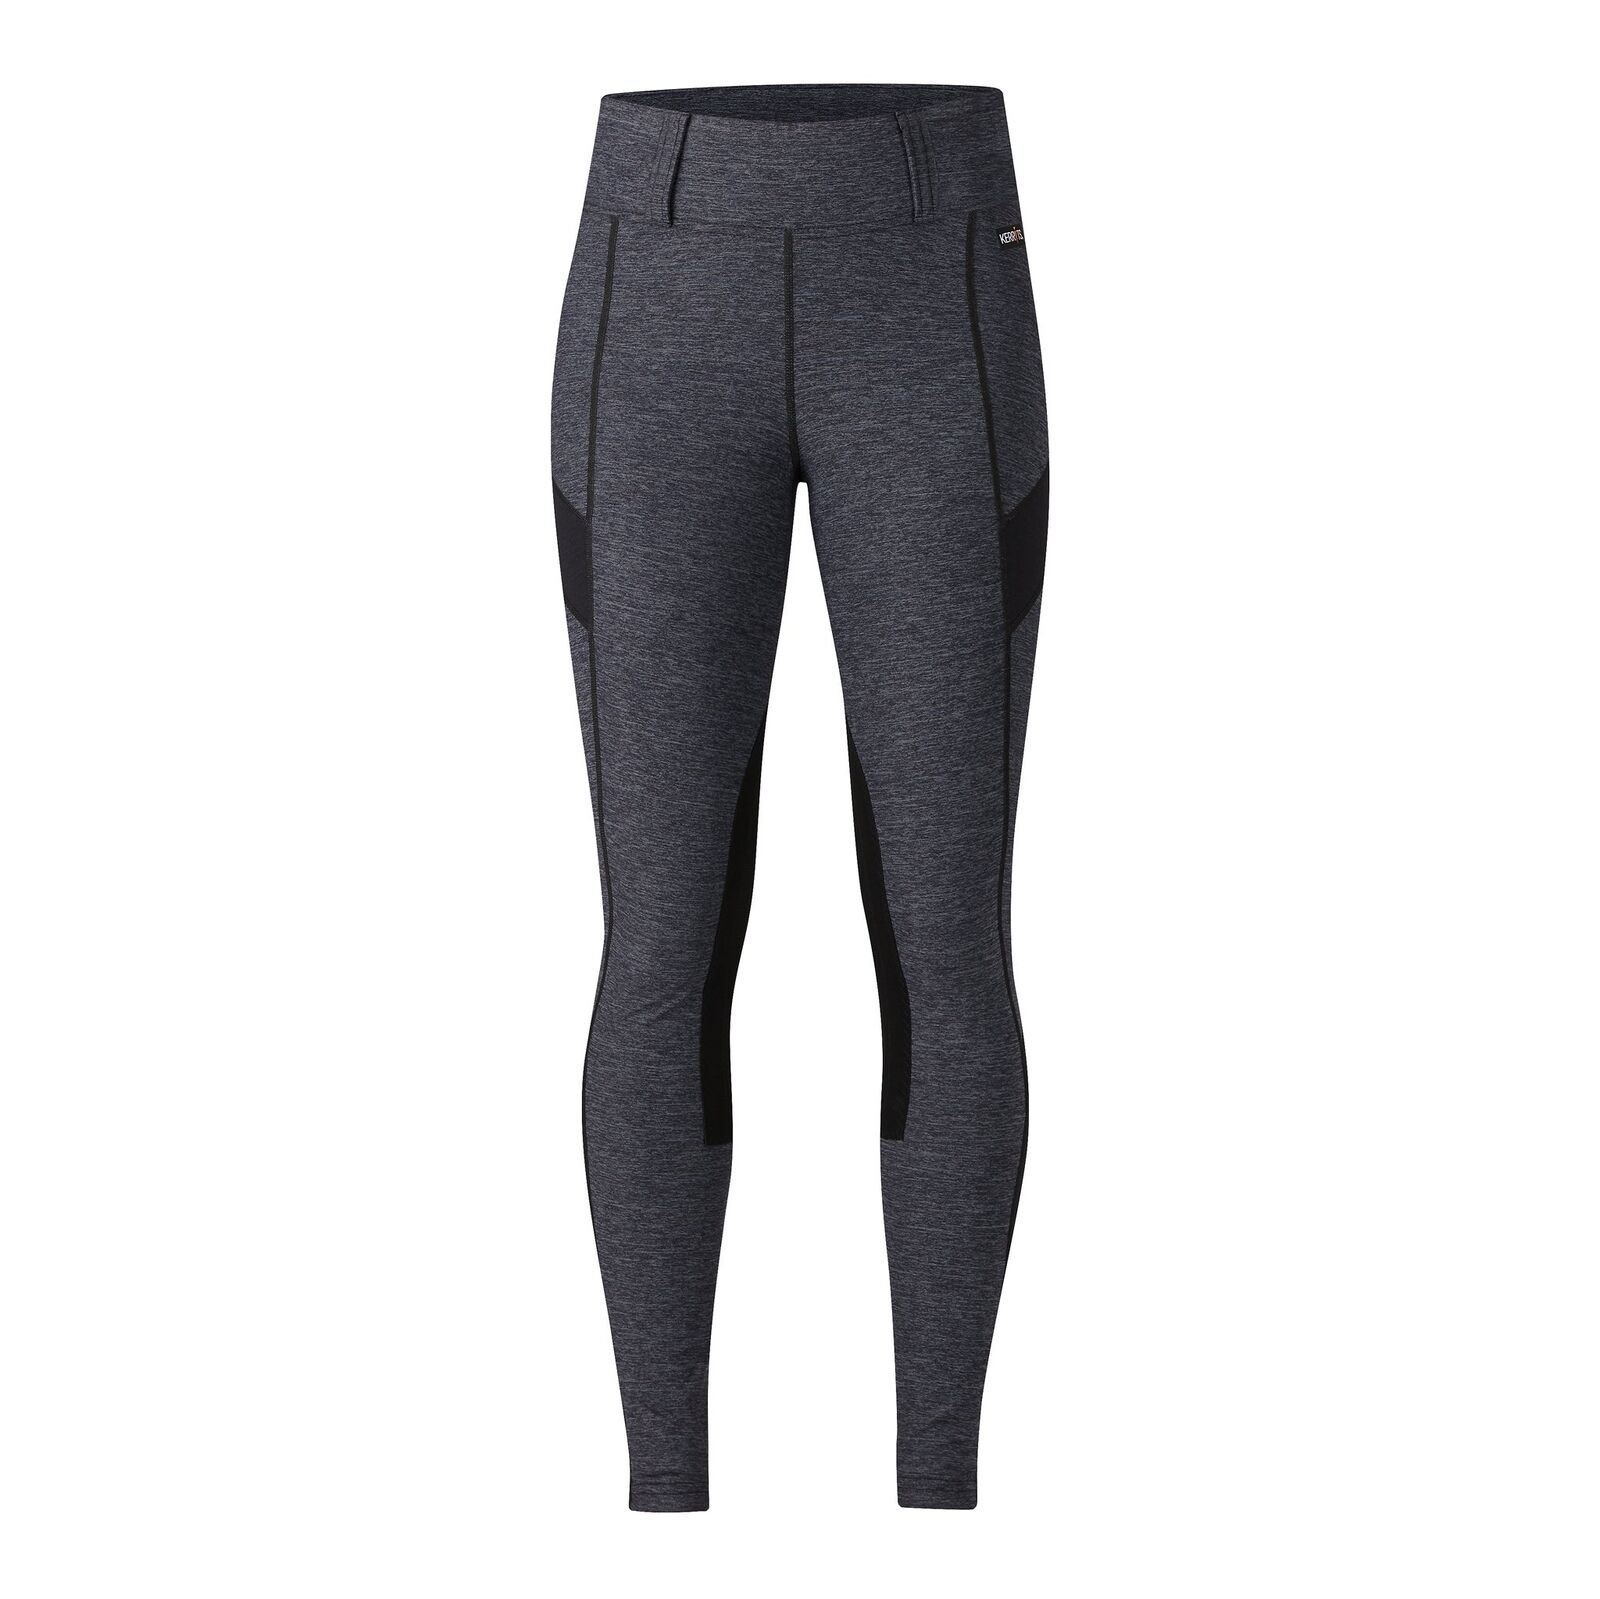 Kerrits Women's Power Sculpt Lightweight Riding Tights with color Panels